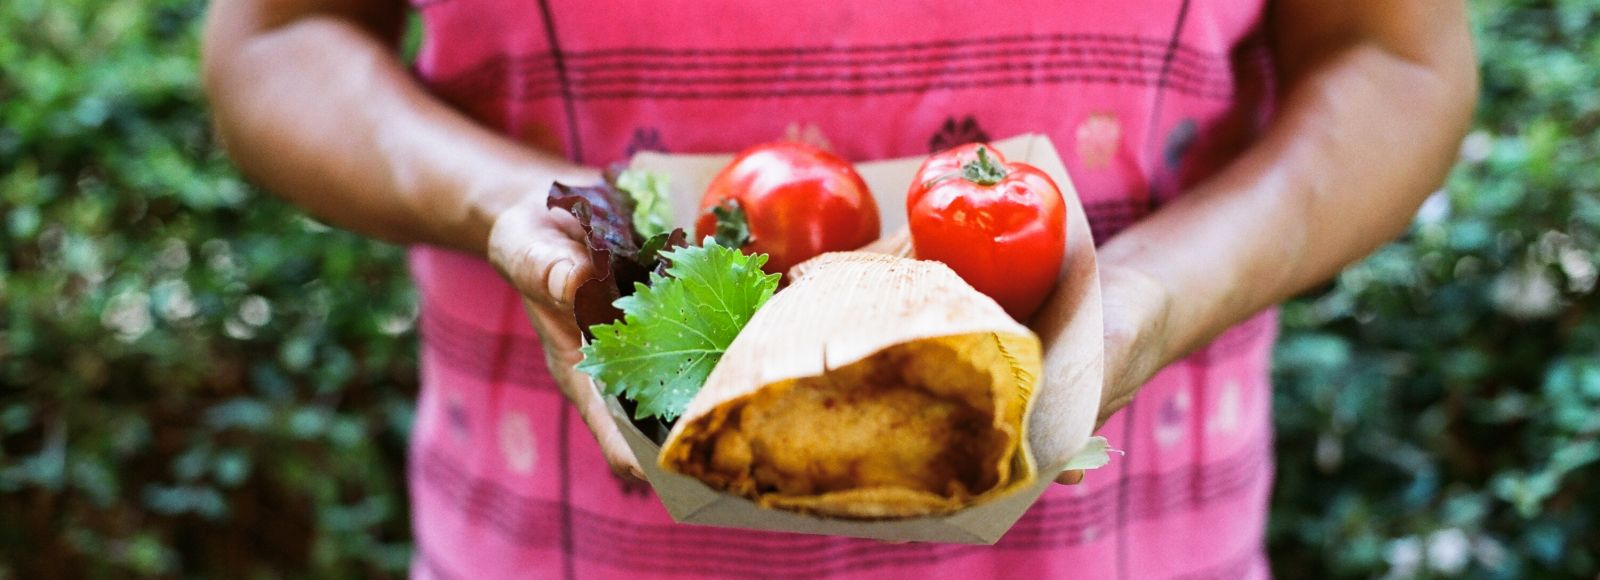 Women holds a tamale with two red peppers and greens